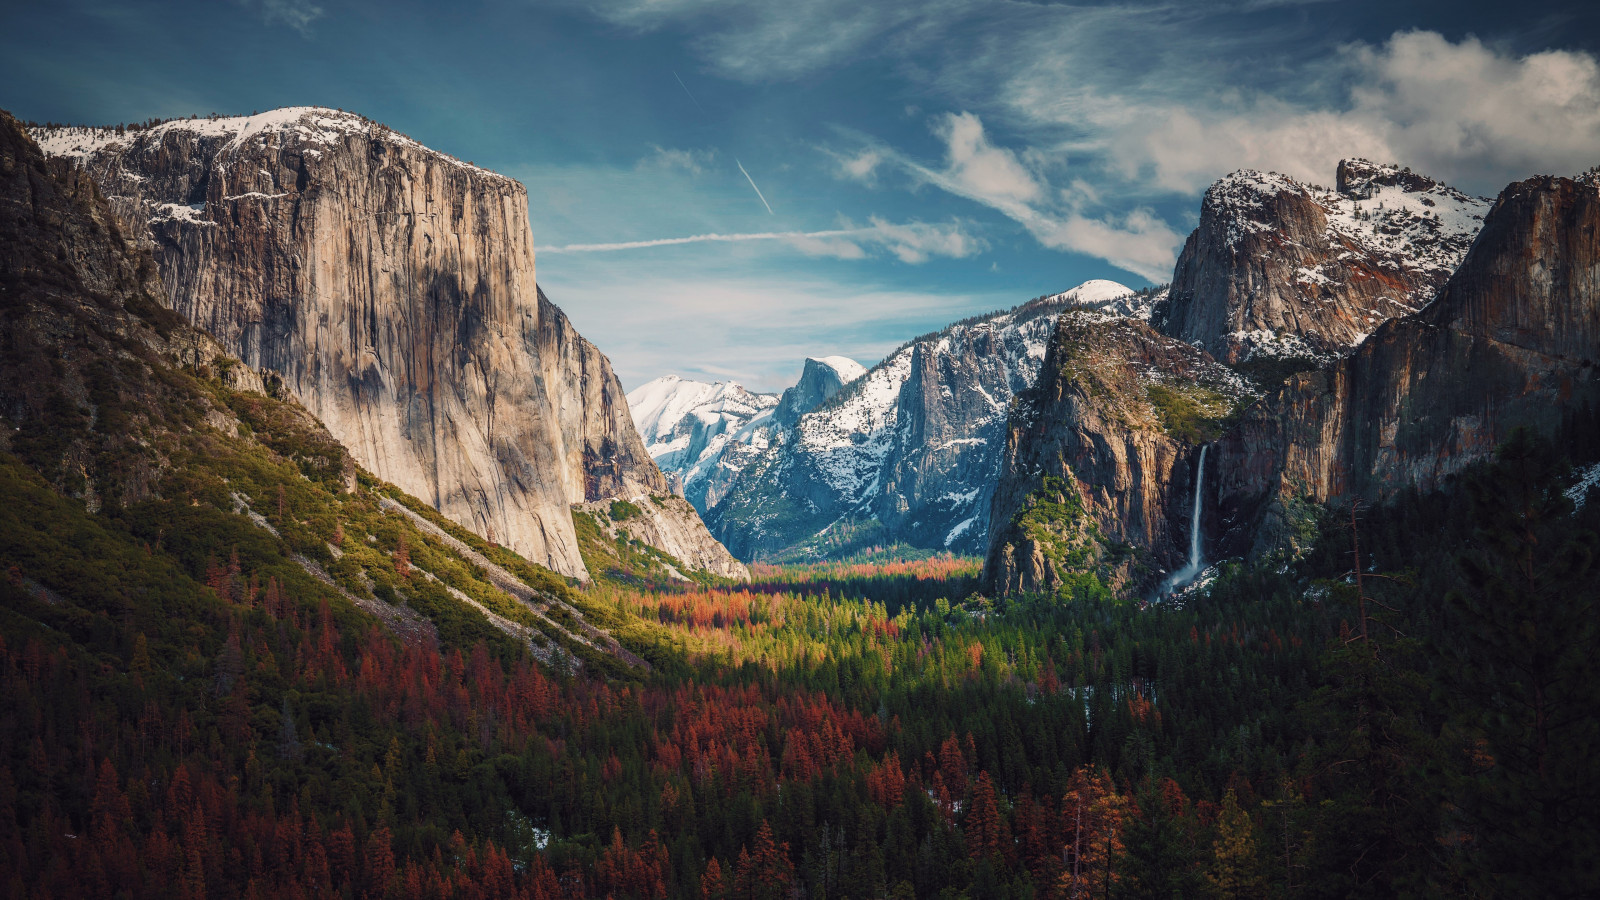 Best View from Yosemite wallpaper 1600x900